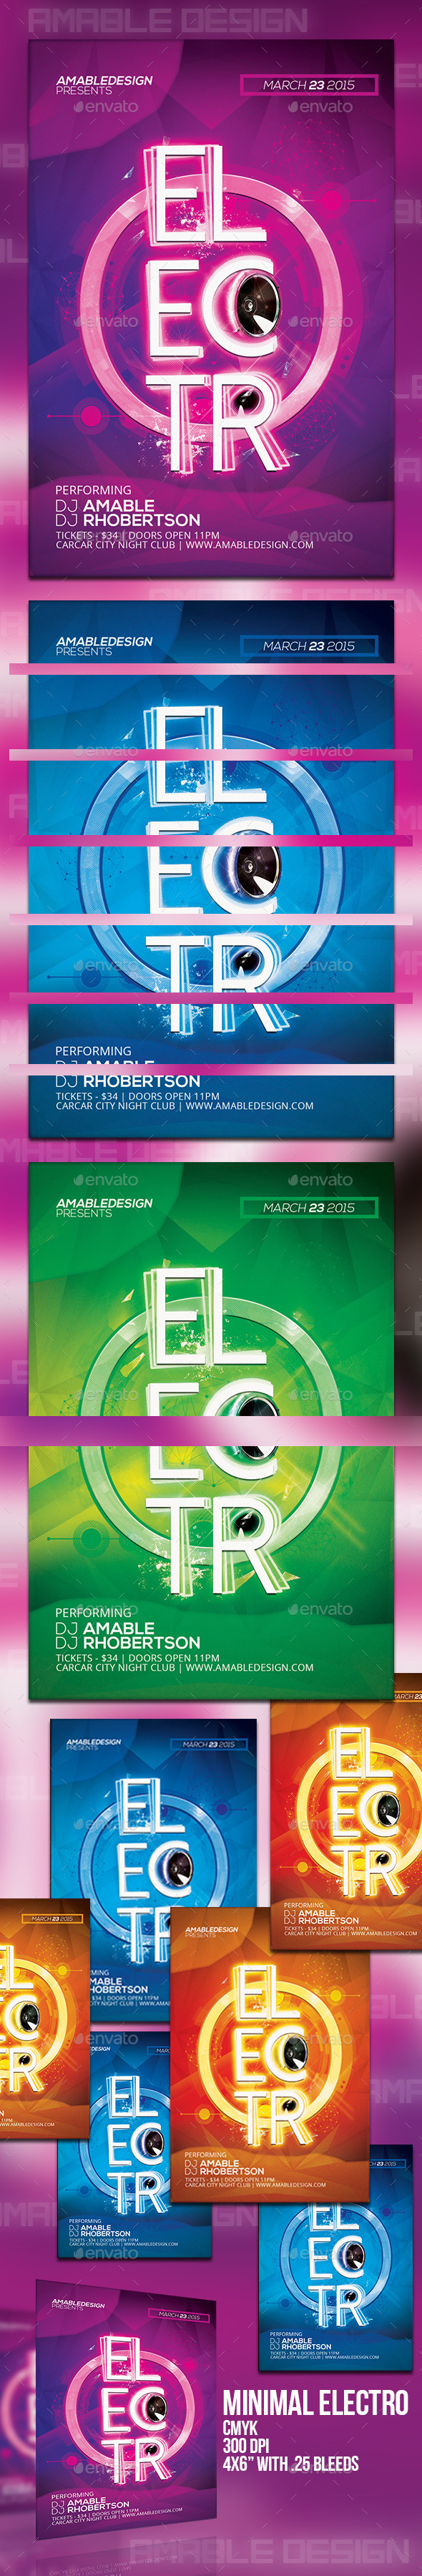 GraphicRiver Minimal Electro Flyer 10508080